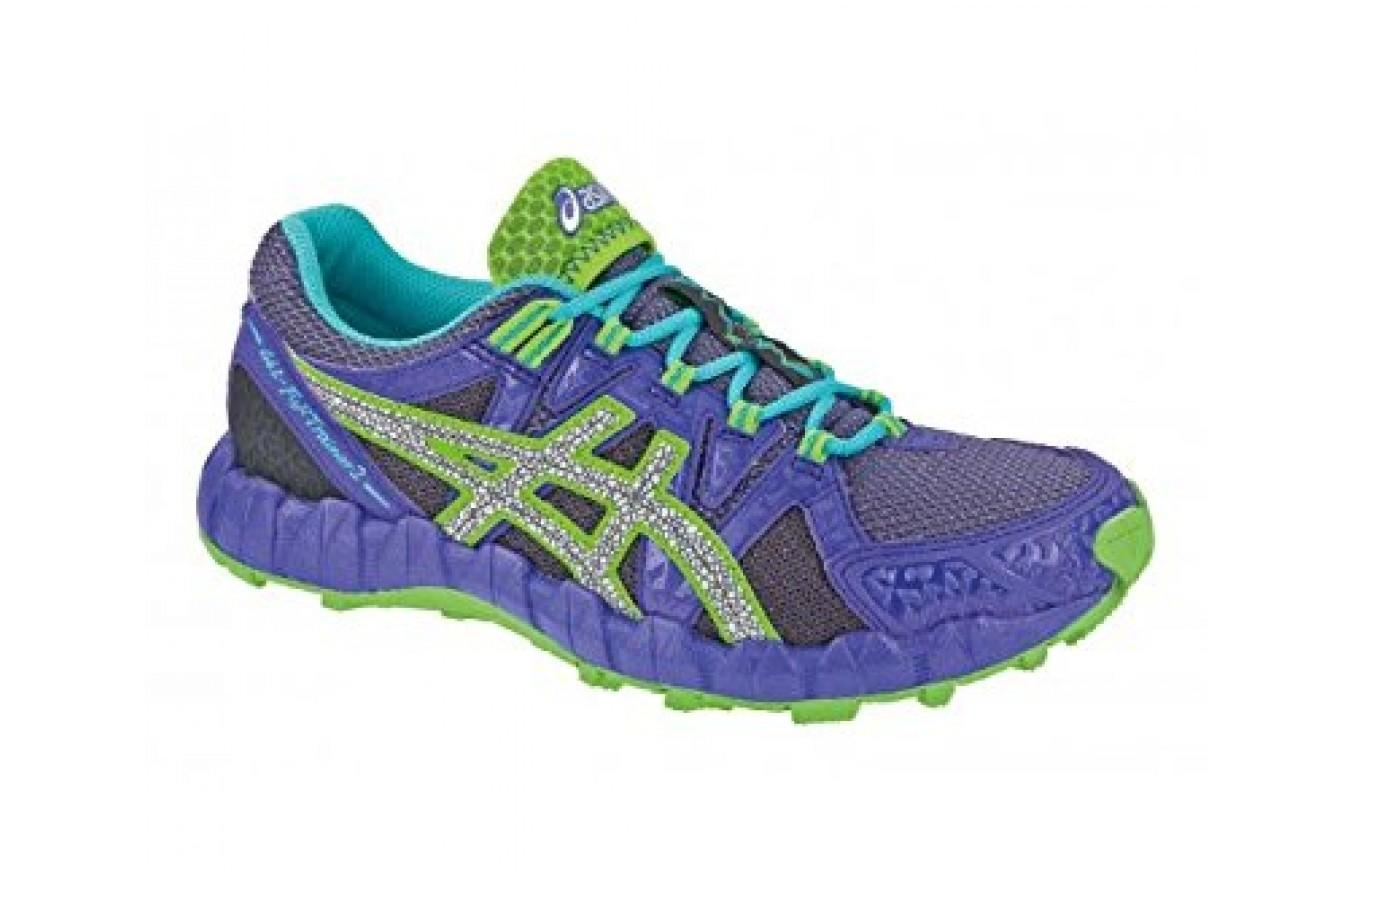 Women's Asics Gel Fuji Trainer 2 in purple and lime